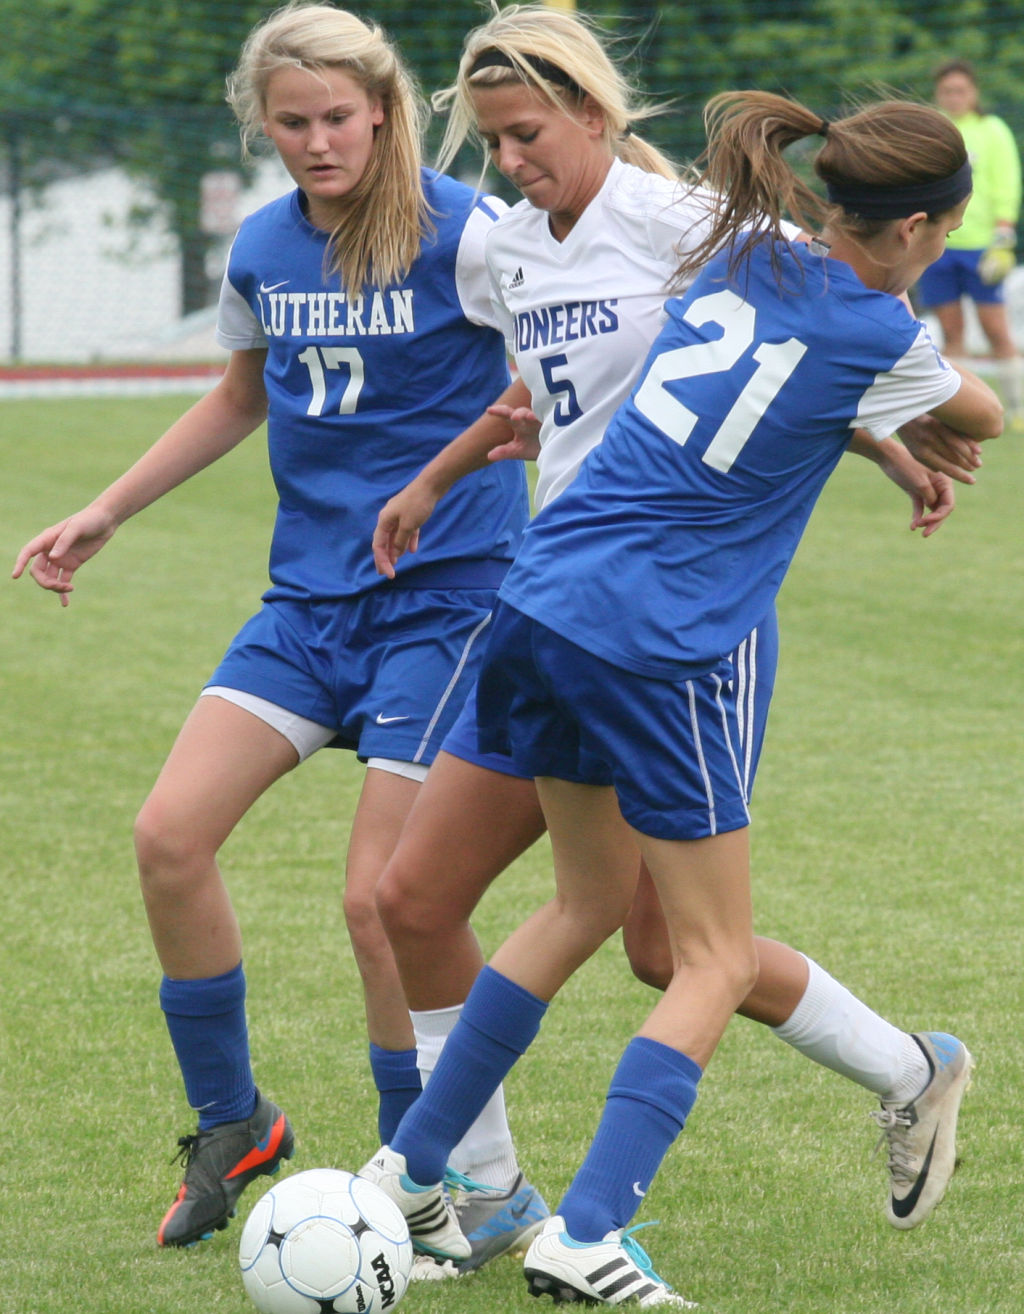 Duchesne High School Soccer Schedule Duchesne Advances To State With 6 1 Rout Of Lutheran St